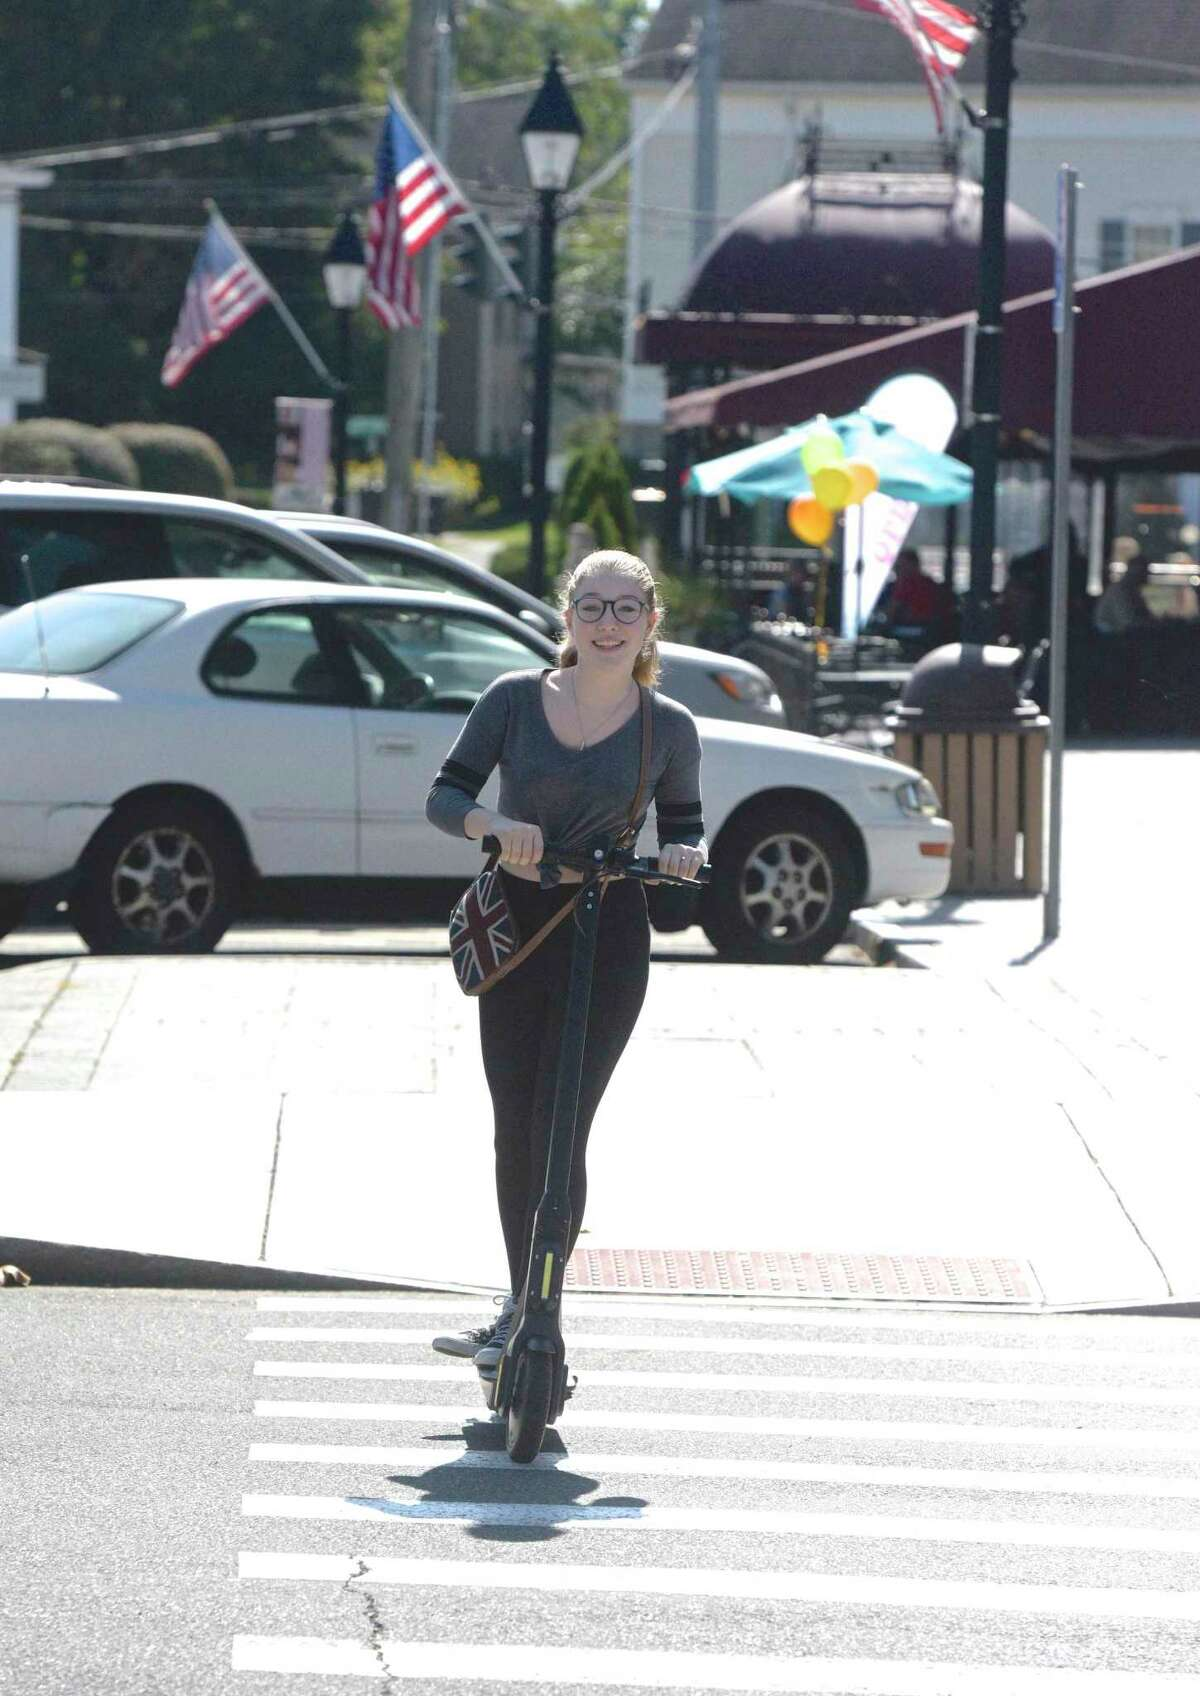 In September, Riley Mahan of New Milford was seen riding a scooter available for rent on the corner of Main & Bank Street in town.